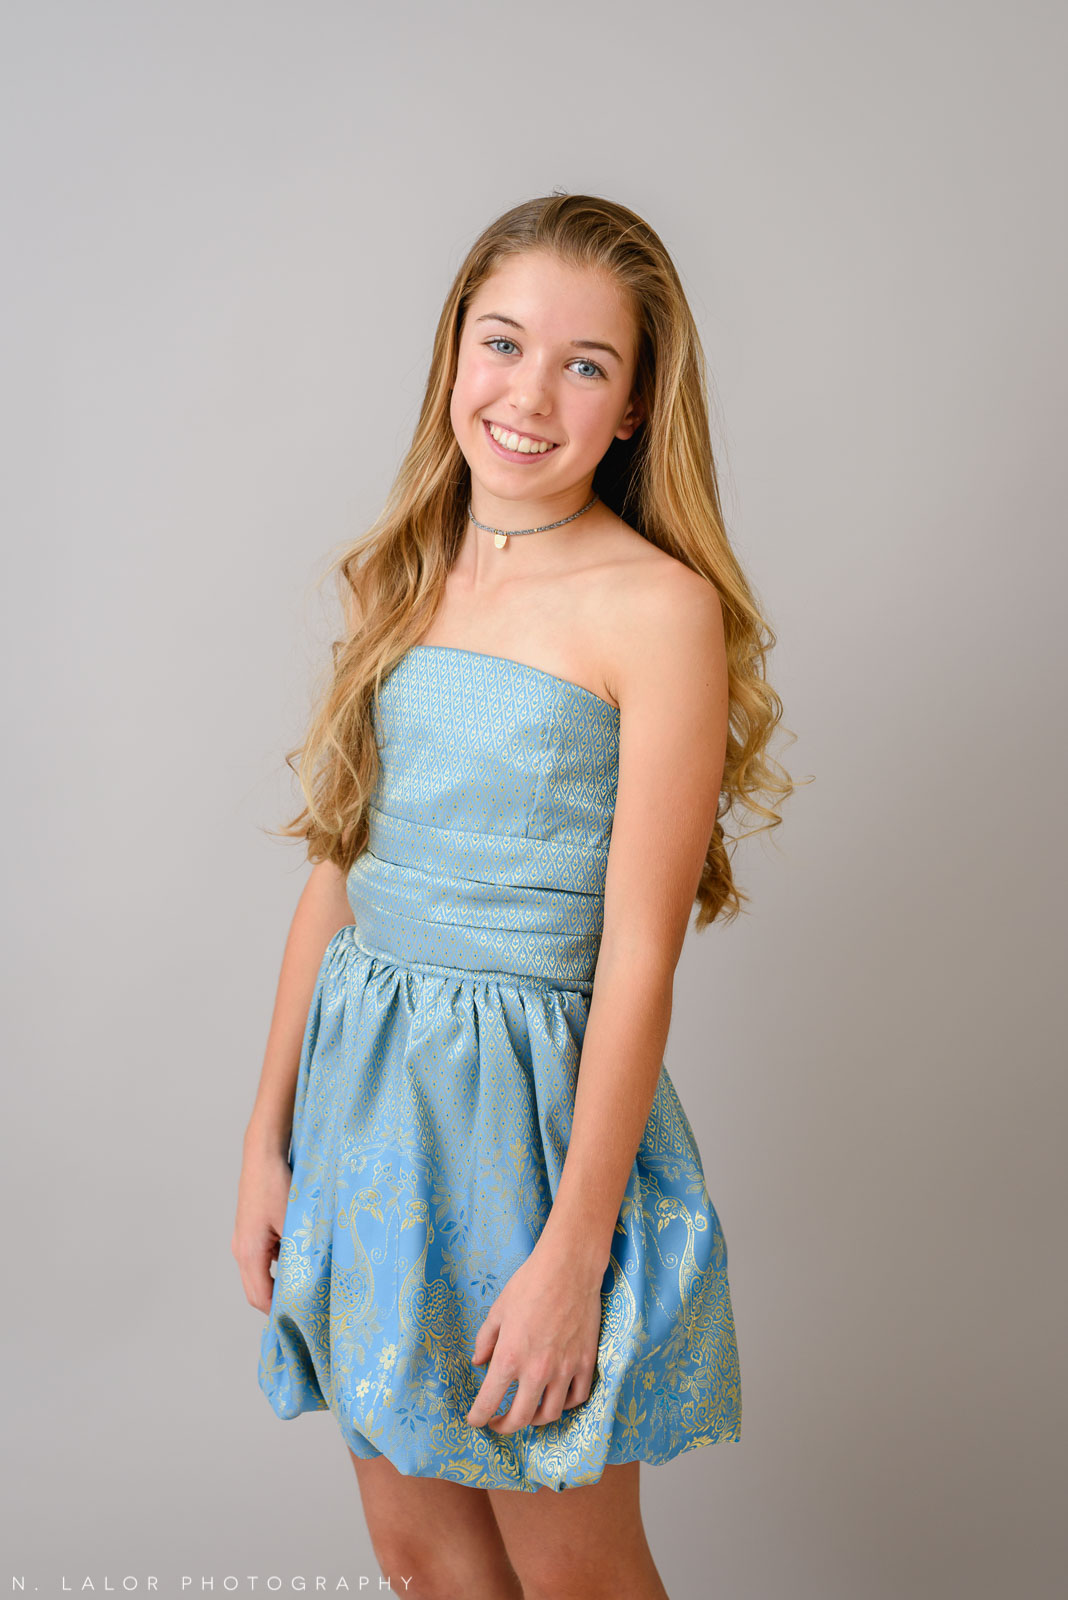 Gorgeous blue dress for teens. Photoshoot for Stella M'Lia by N. Lalor Photography in Greenwich, Connecticut.